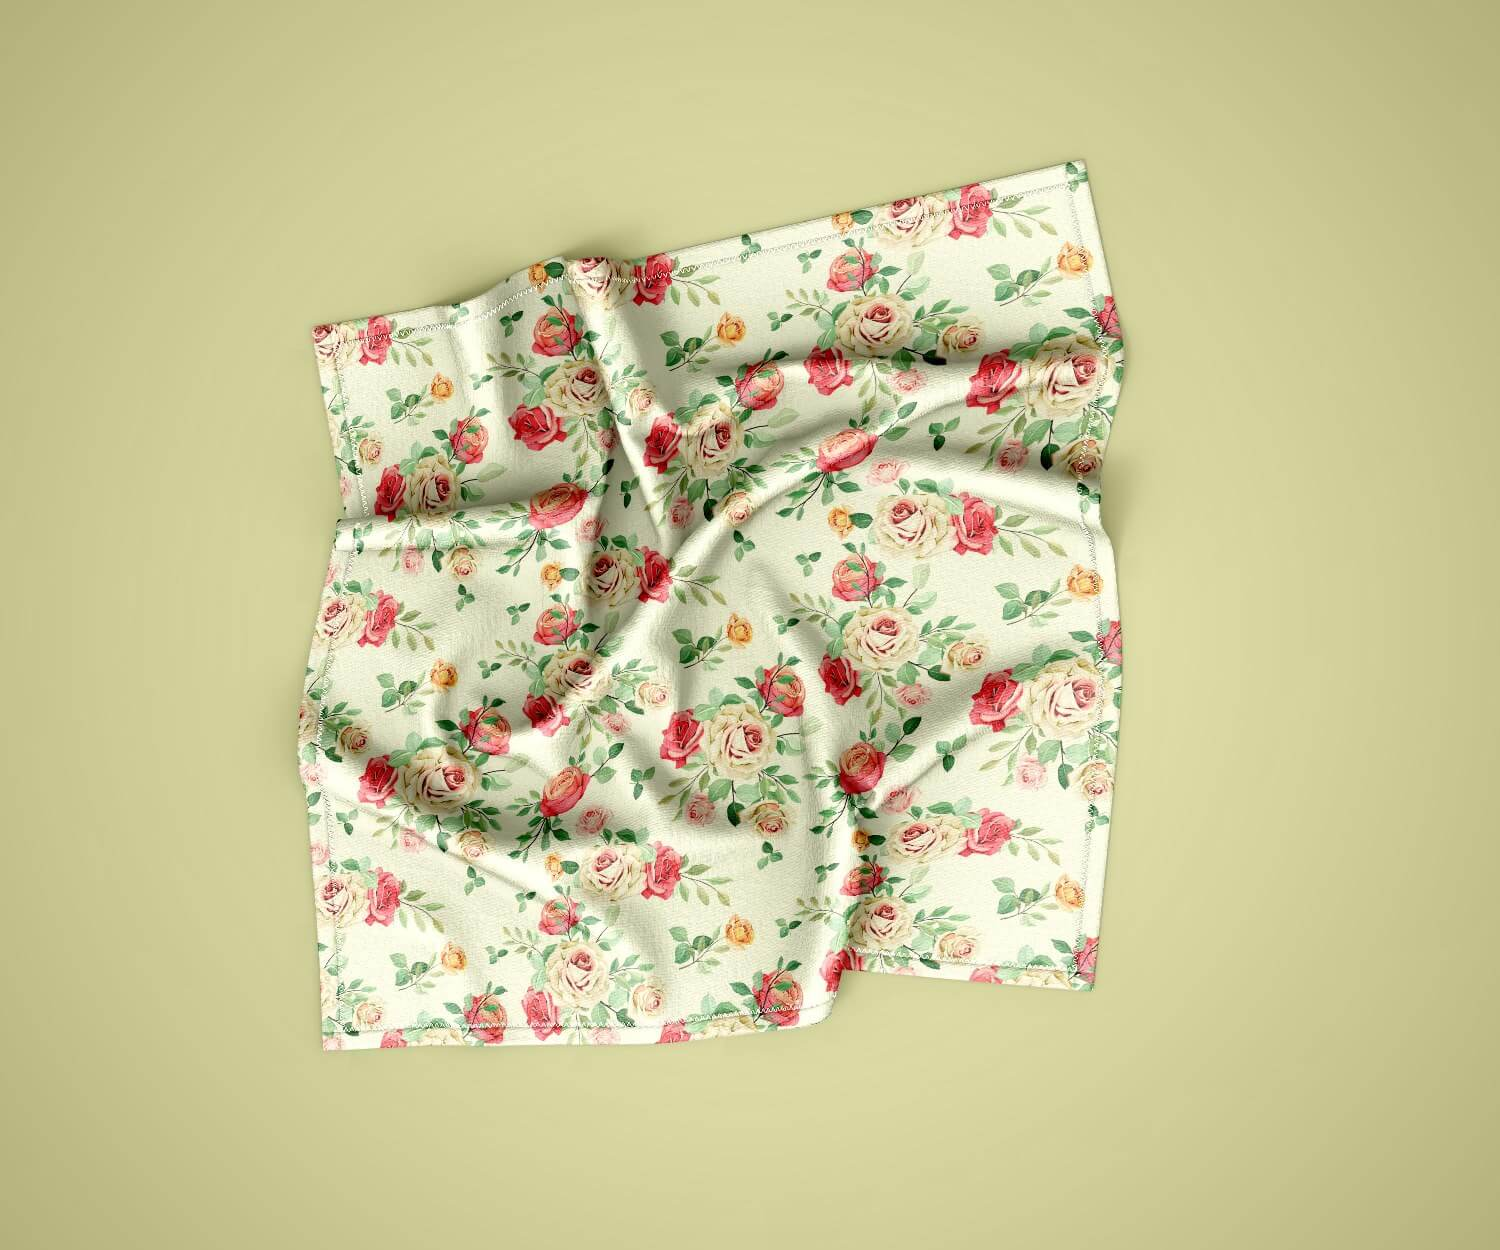 Free psd shows of handkerchiefs pocket tissue mockup. Free Handkerchief Mockup Psd Template Mockuphut Exclusive